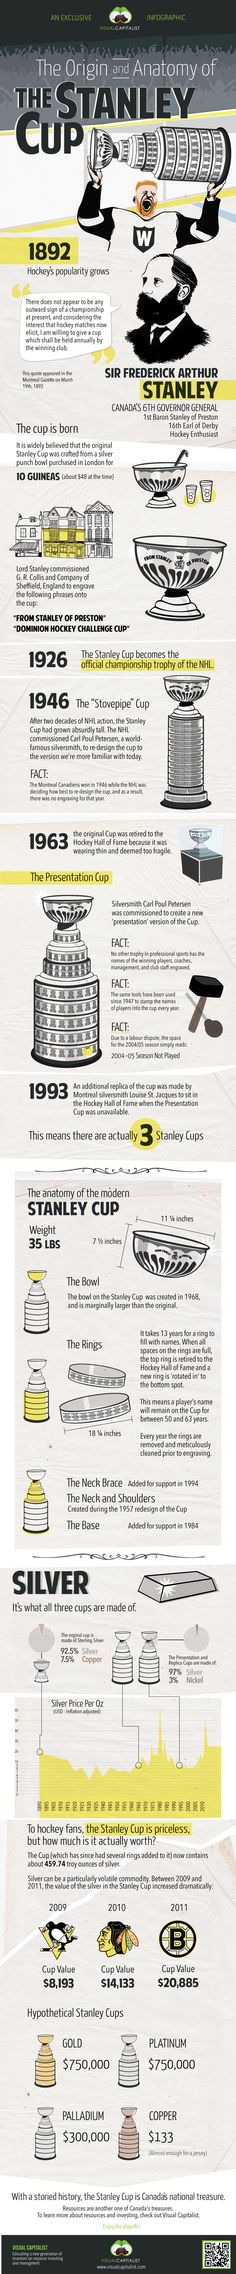 Stanley Cup infographic